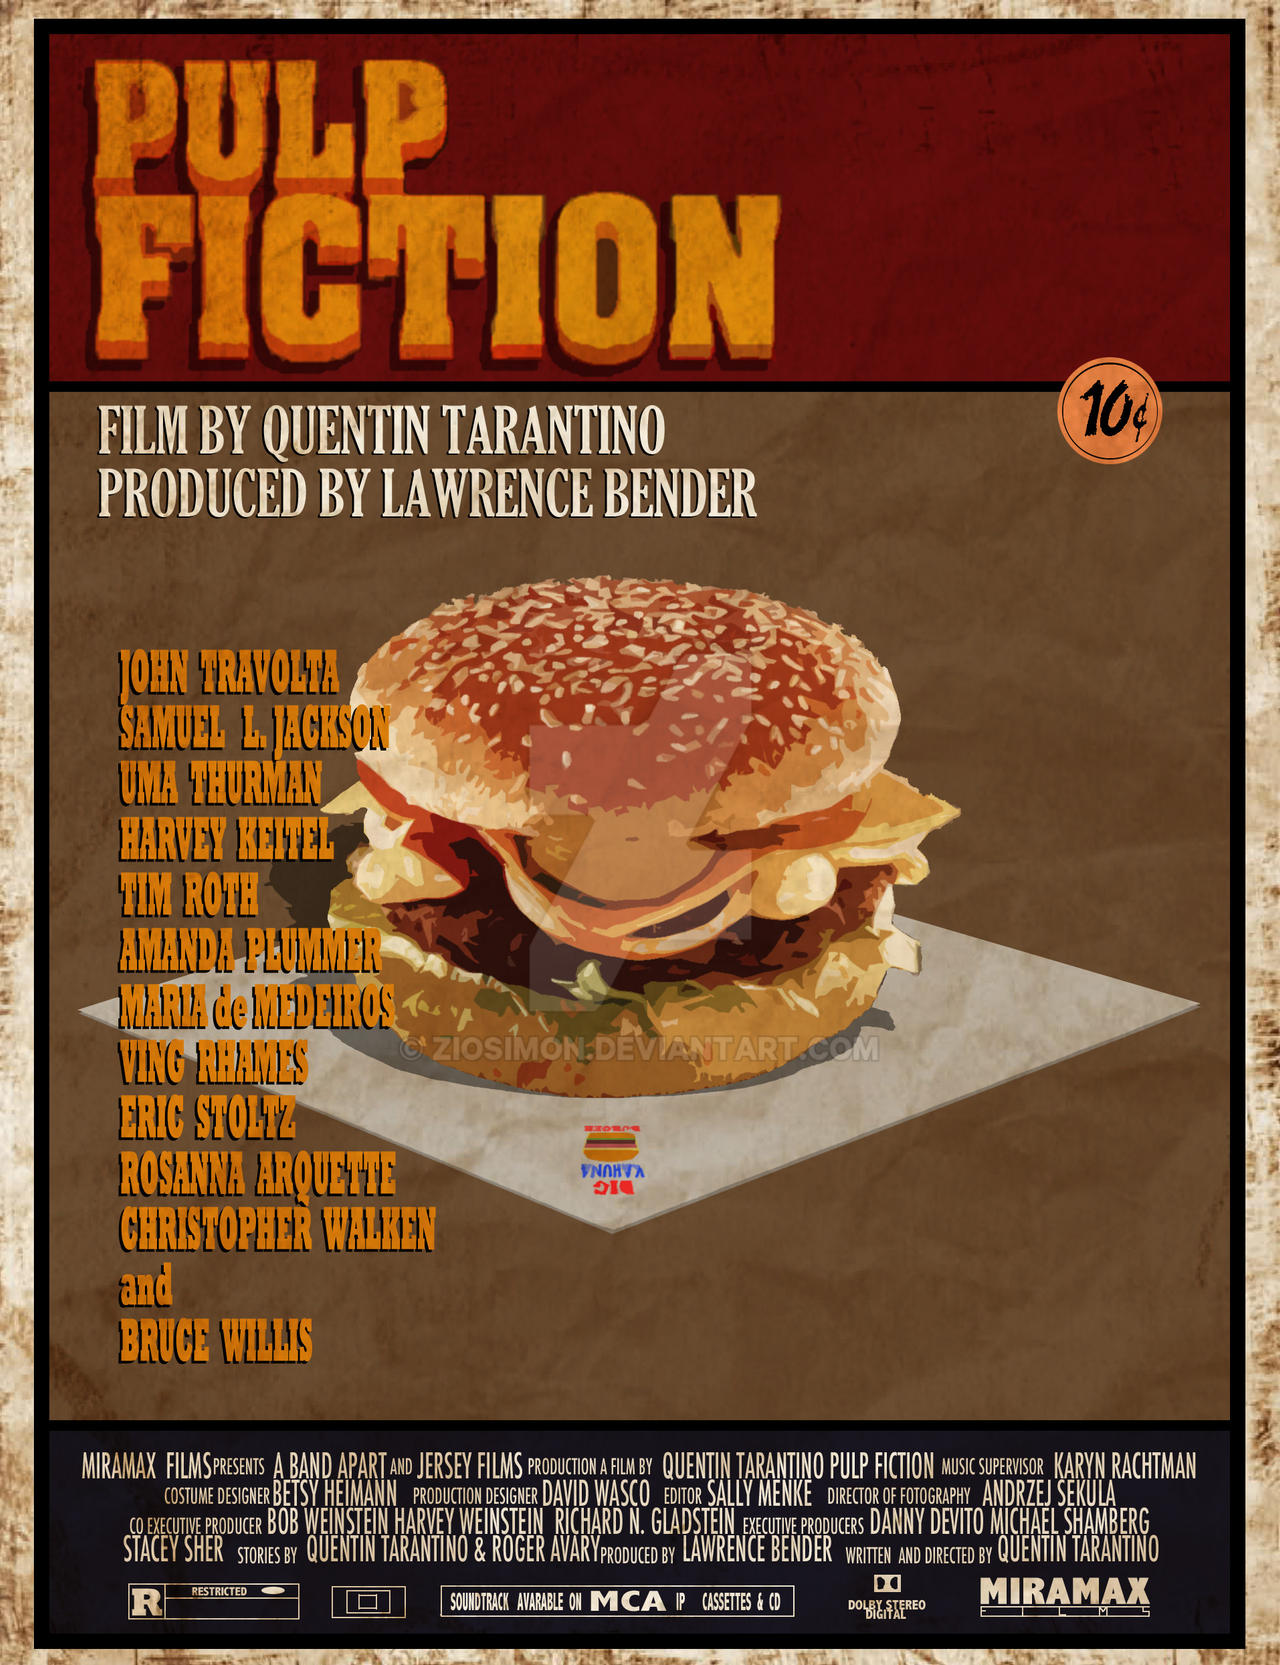 MOVIE FOOD - PULP FICTION by ziosimon